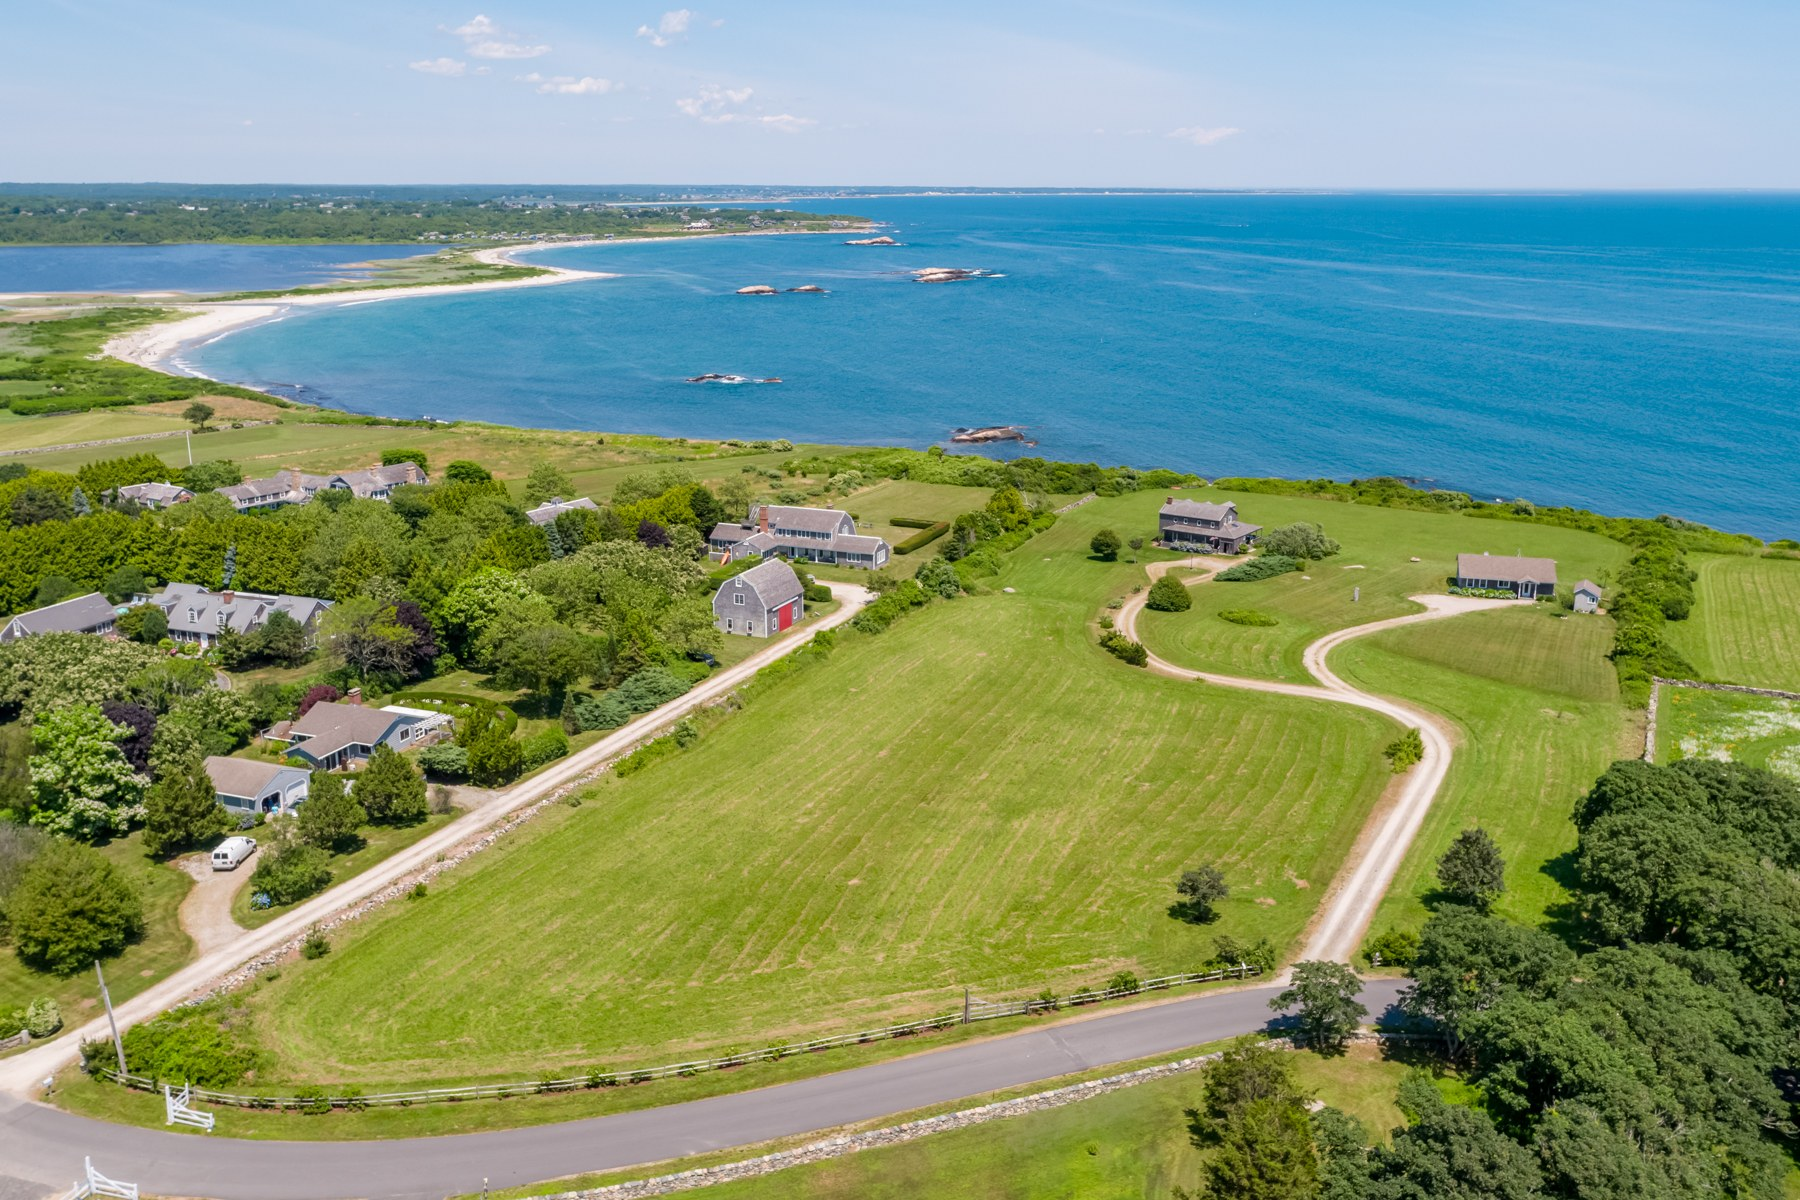 Land for Sale at 2 Grinnell Road, Little Compton, RI 2 Grinnell Road Little Compton, Rhode Island 02837 United States